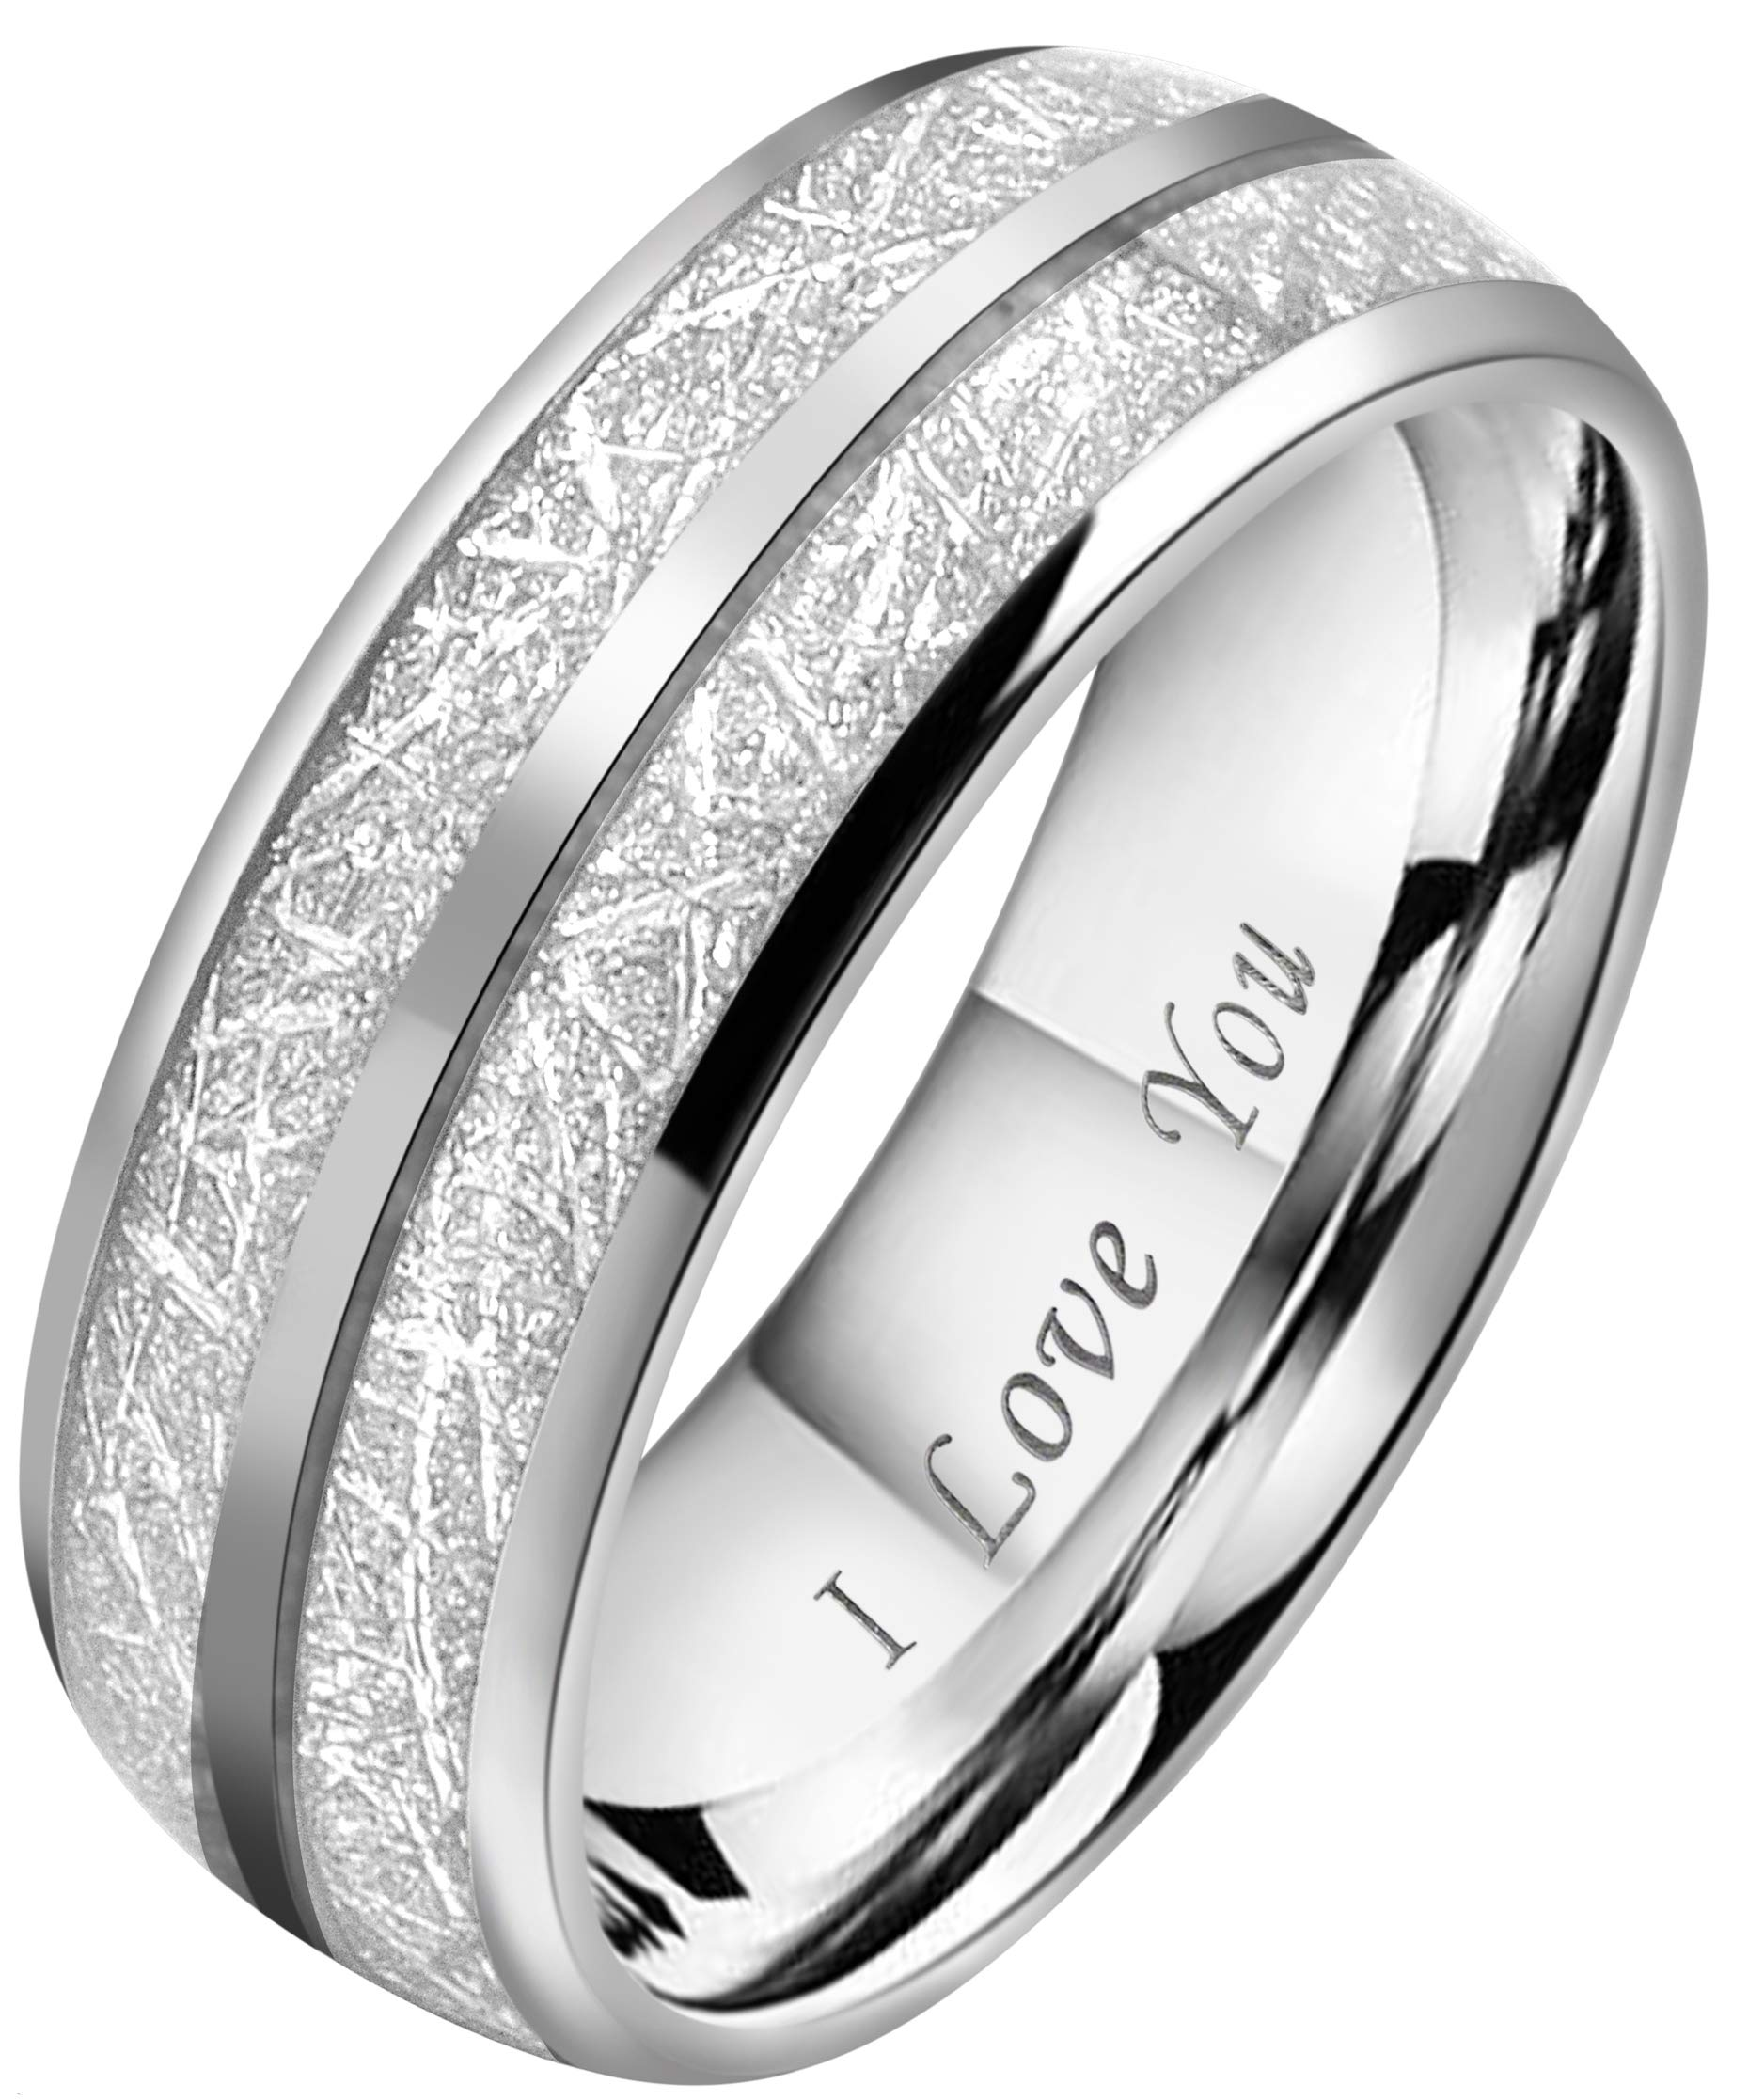 Crownal 8mm Imitated Meteorite Tungsten Wedding Ring Band Engagement Ring Domed Polished Engraved''I Love You'' Size 5 To 17 (8mm,17)